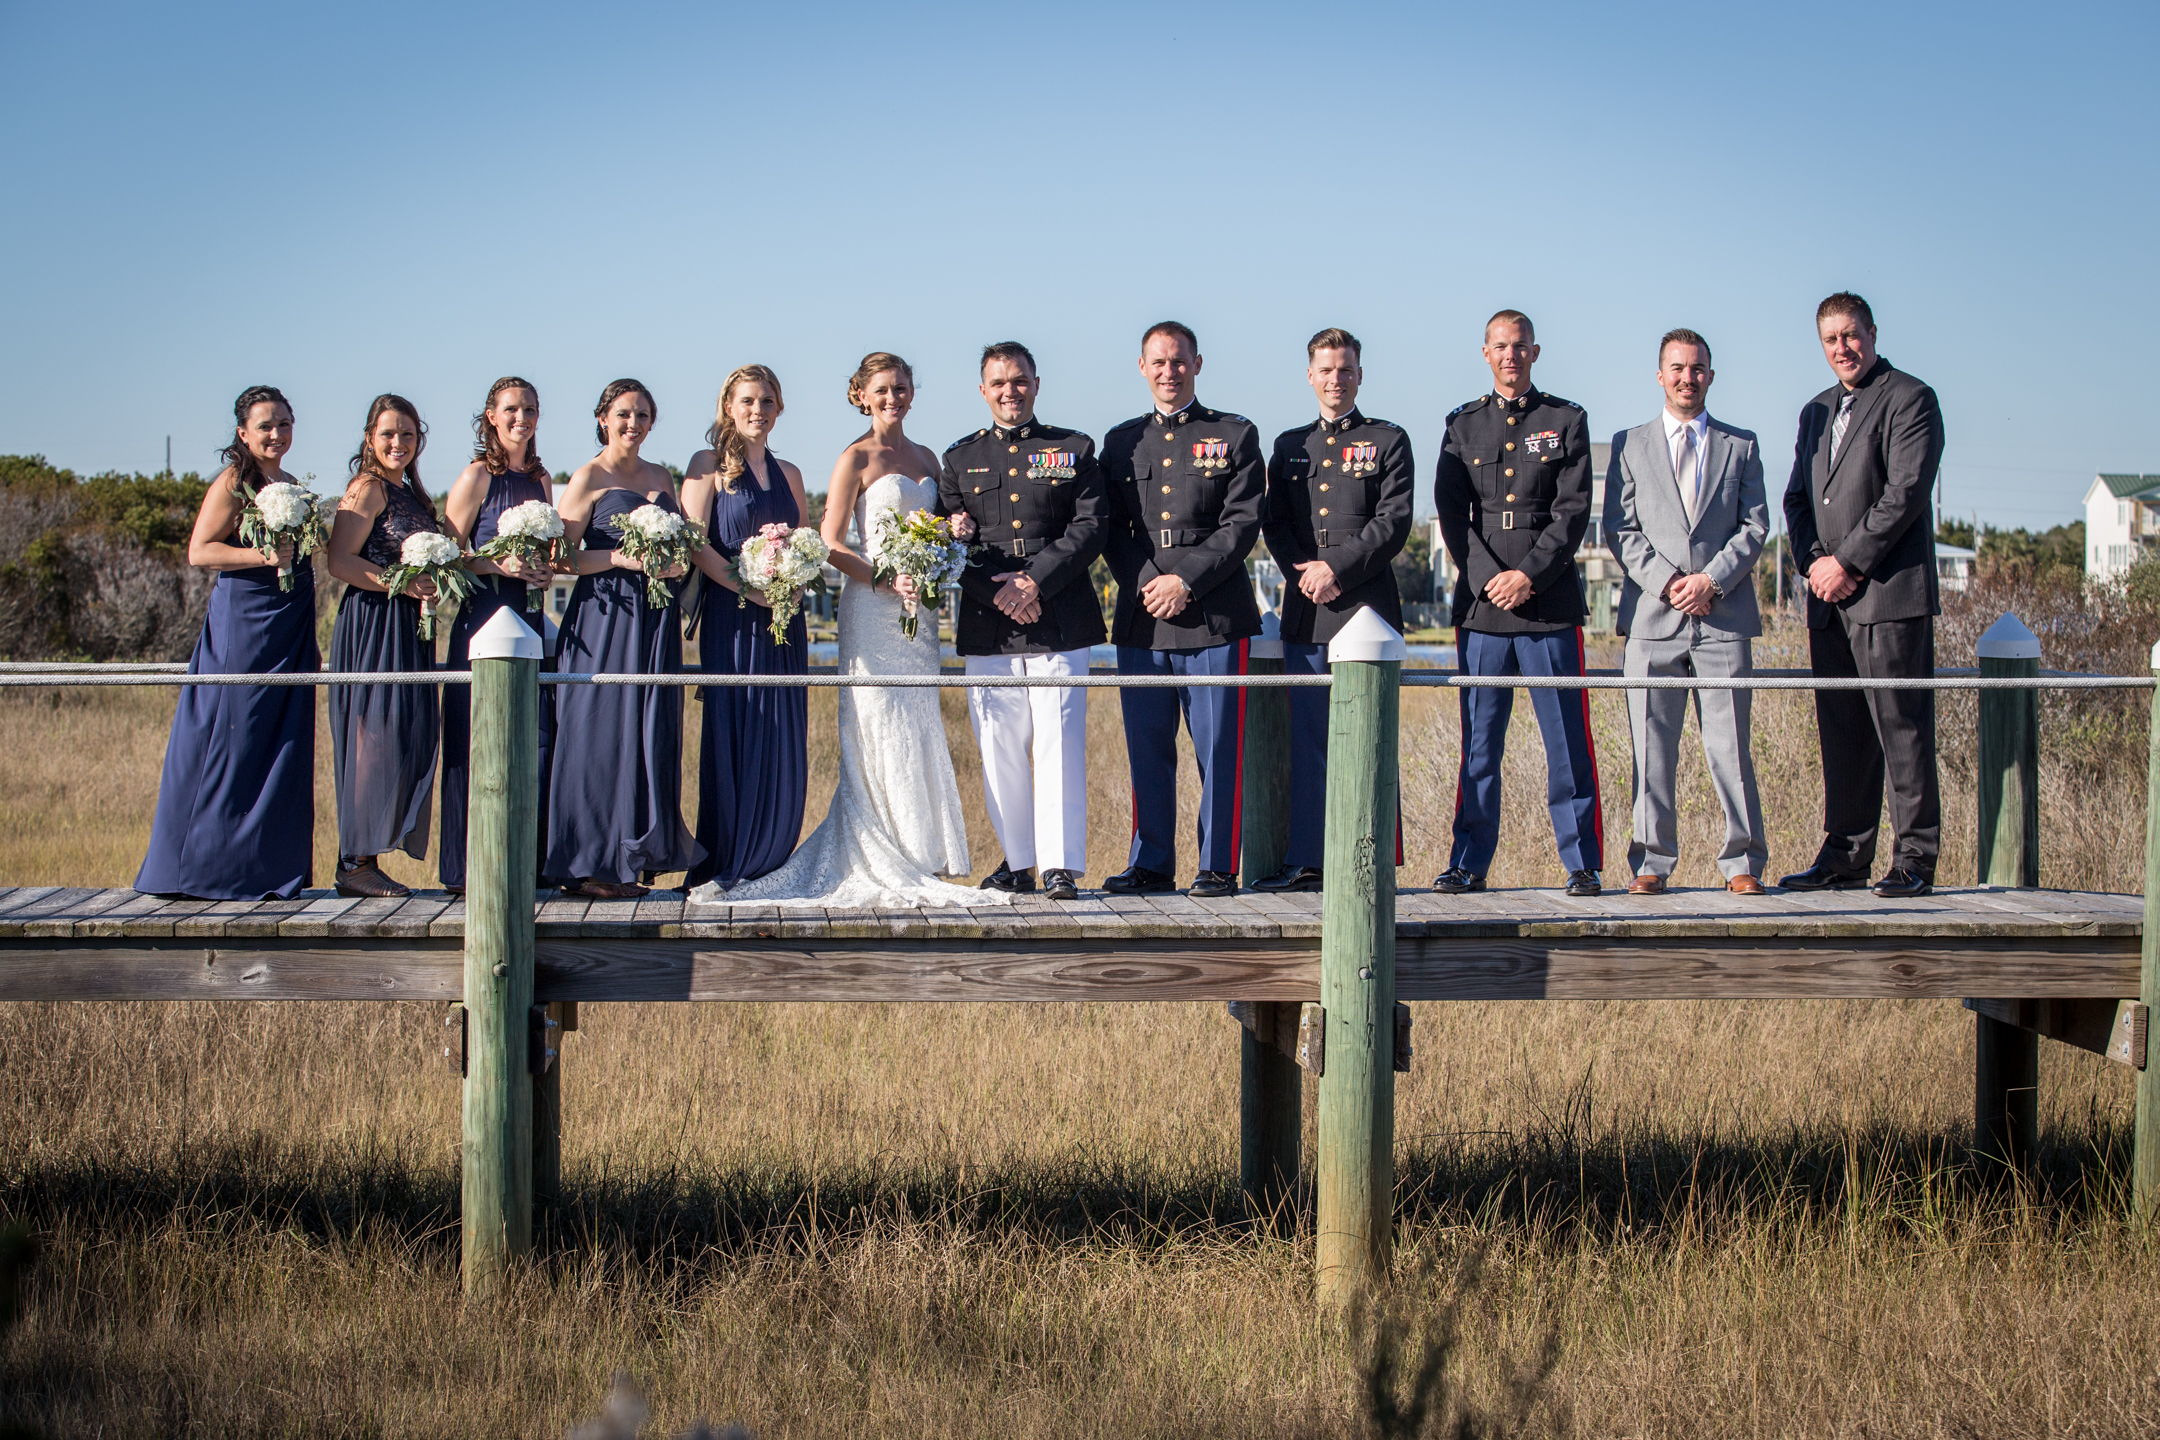 20151114_Stefanski_Wedding_MGM_0004.jpg